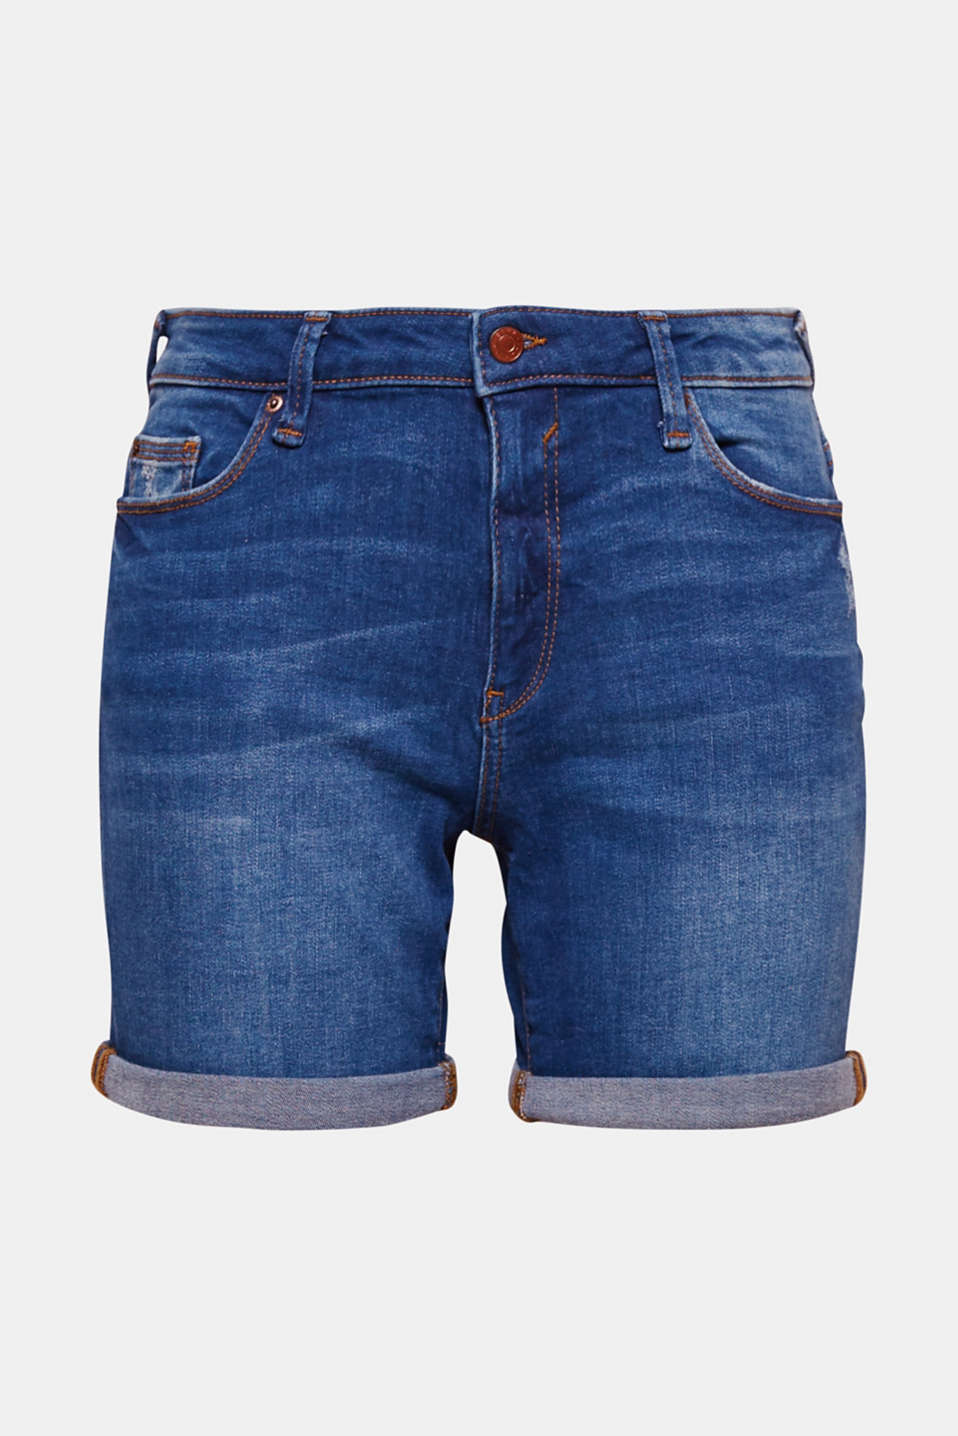 These denim shorts with a straight leg, vintage effects and added stretch for comfort are your perfect pair for summer!